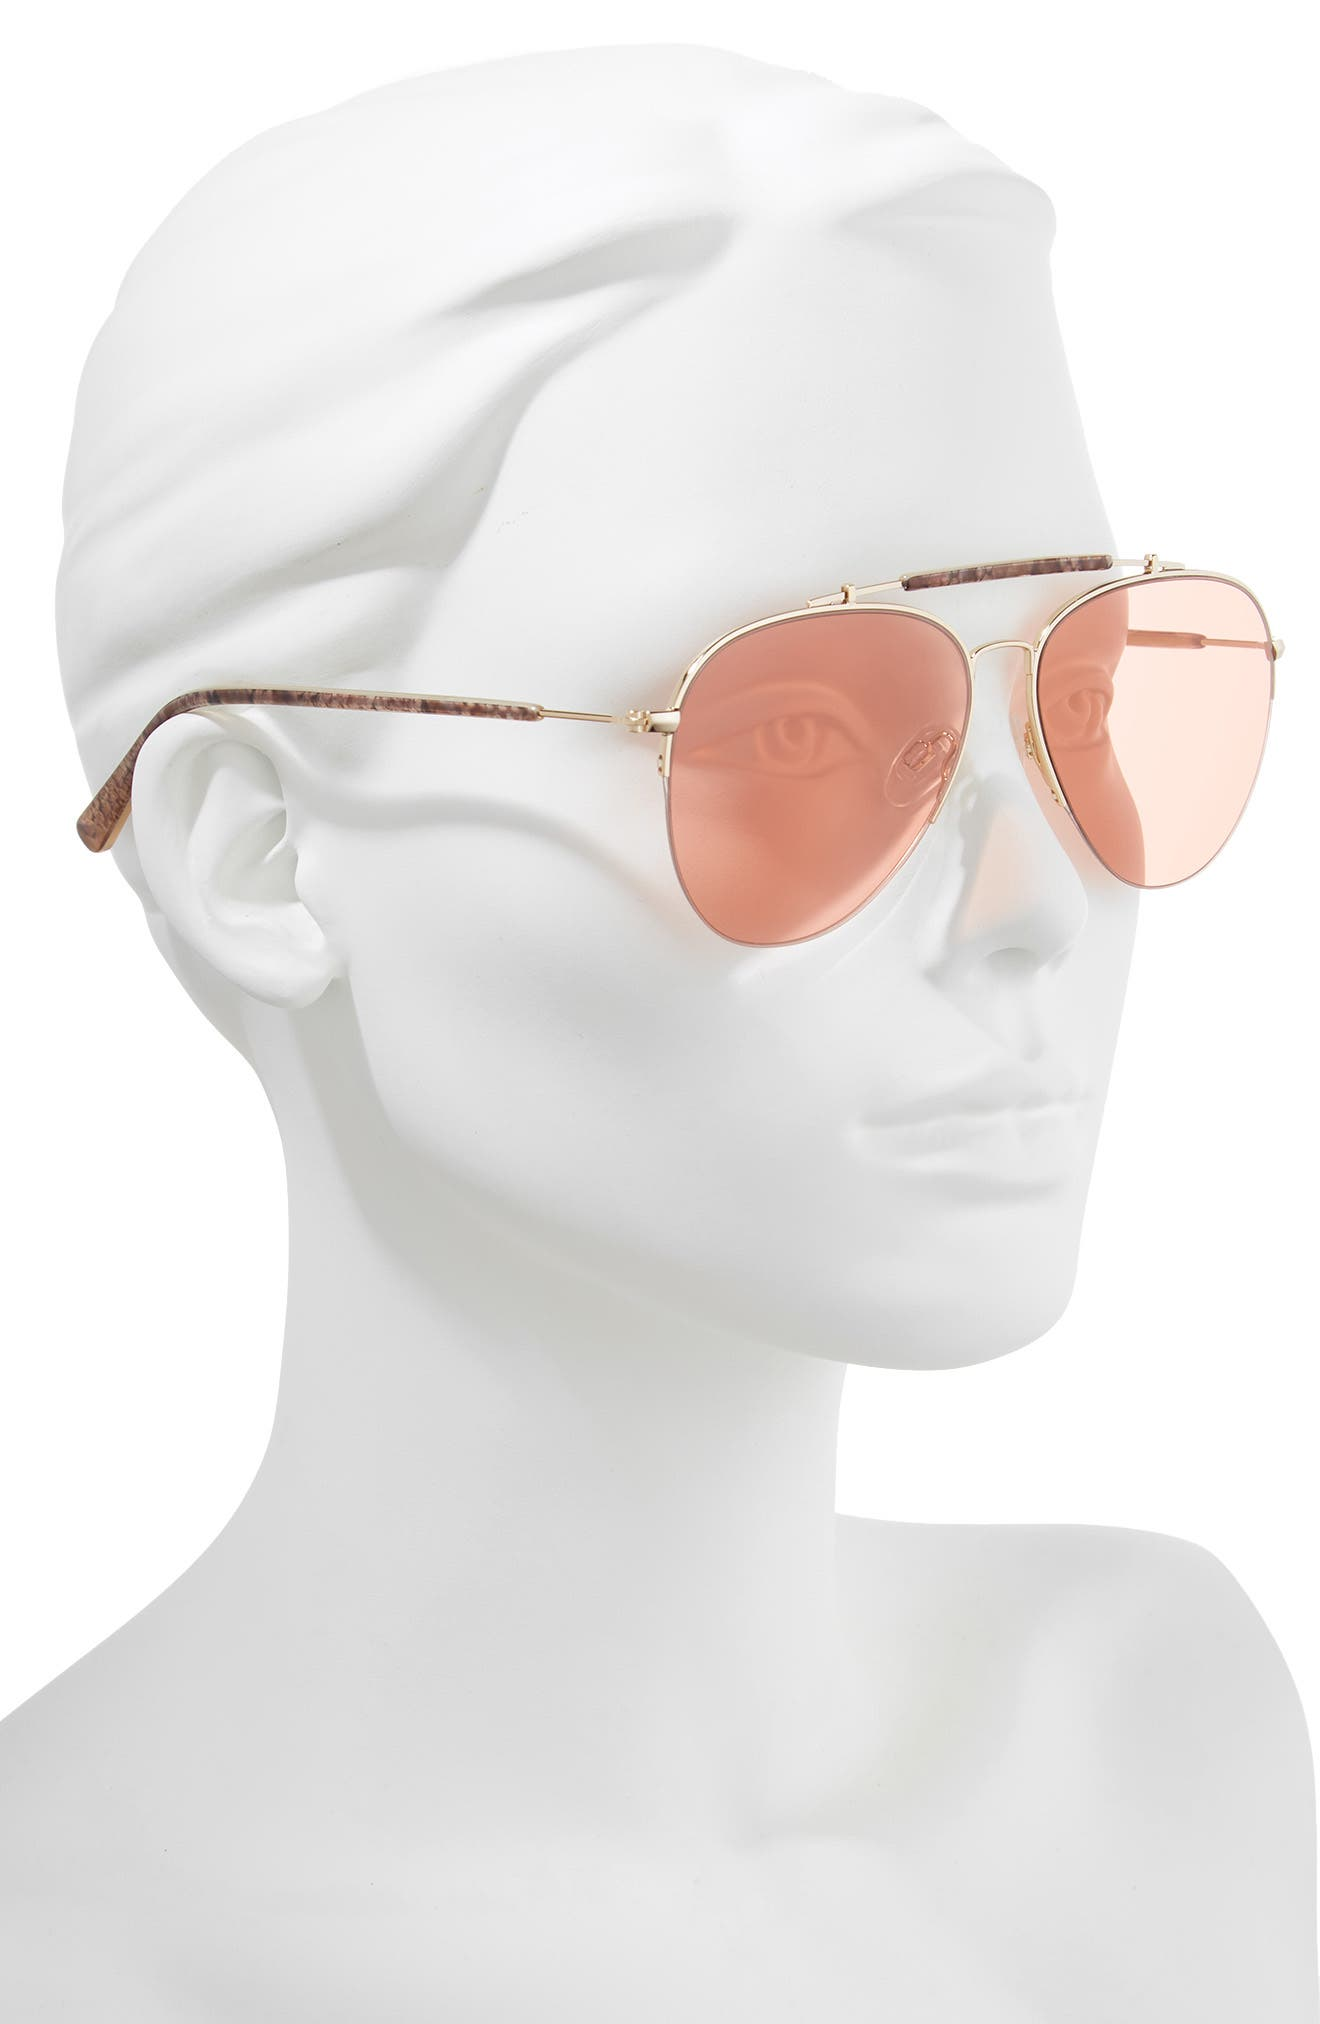 D'BLANC x Amuse Society The Last 58mm Aviator Sunglasses,                             Alternate thumbnail 2, color,